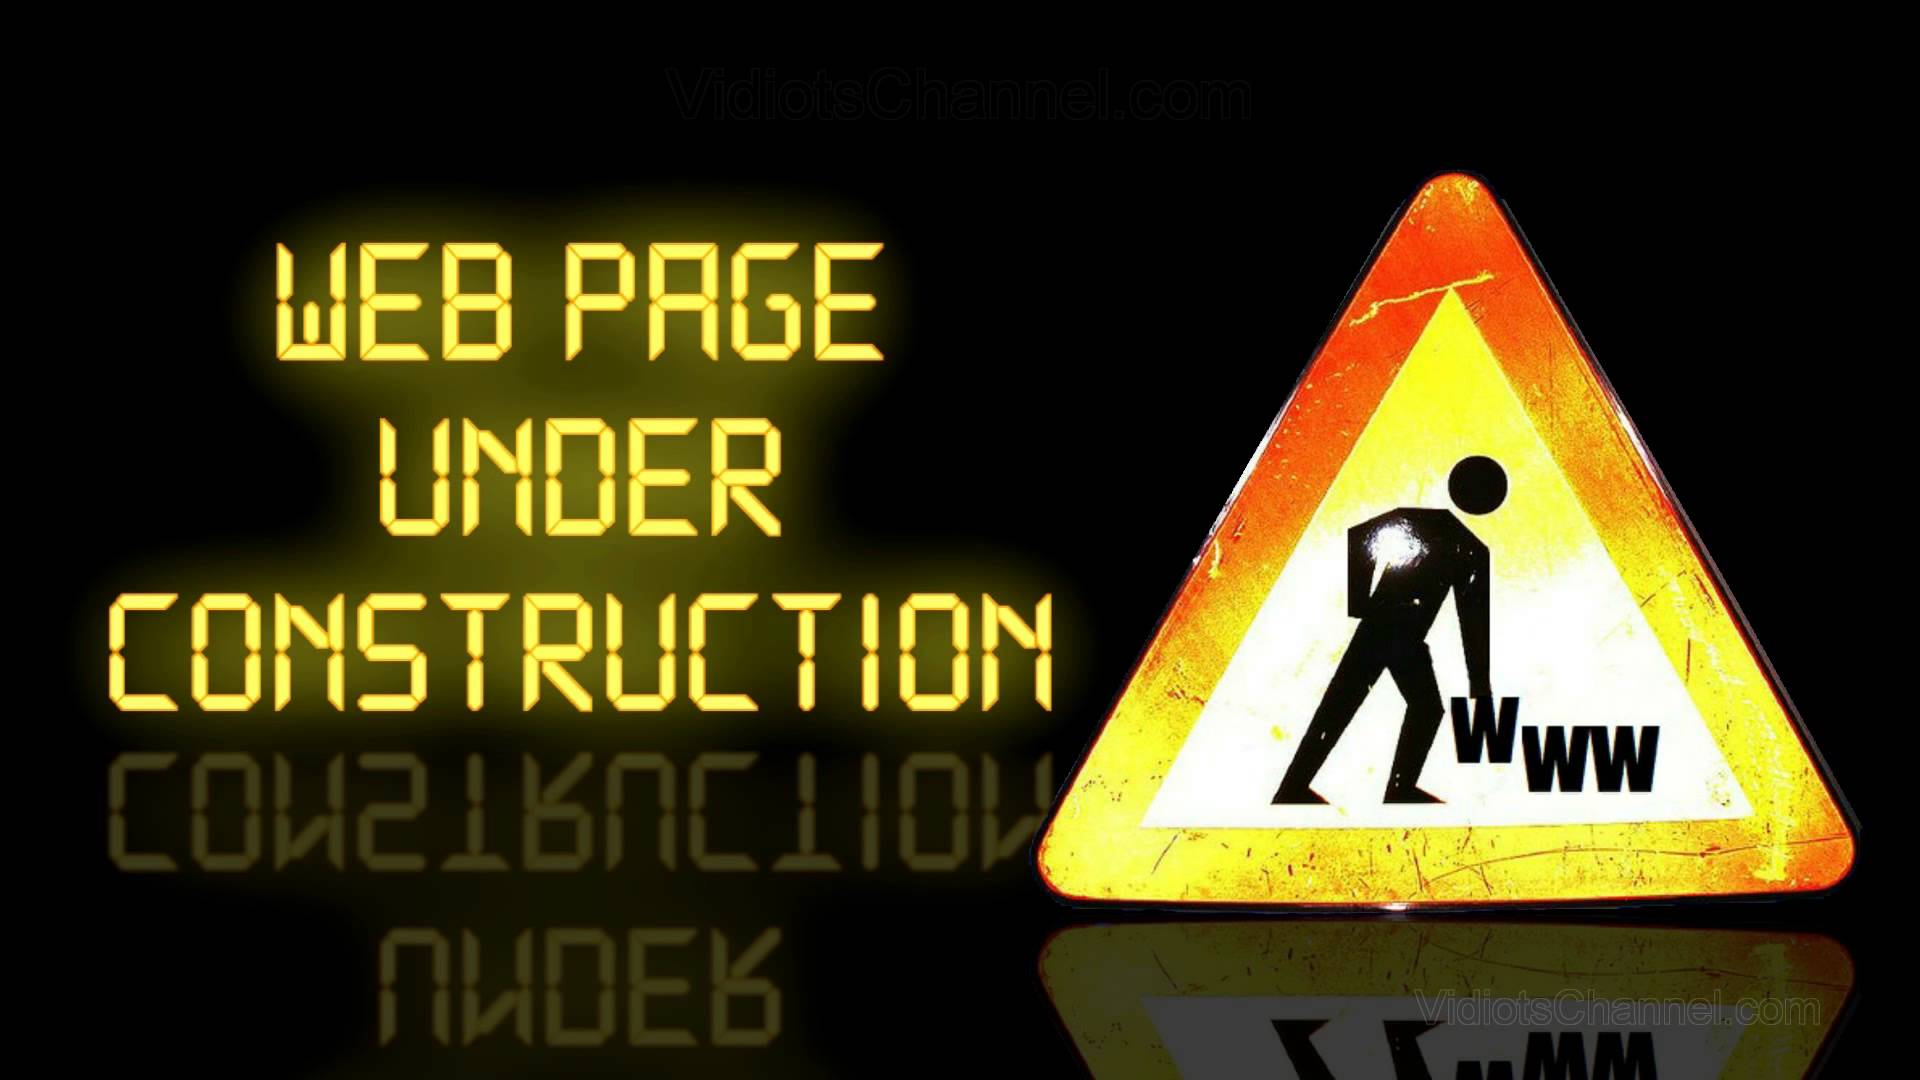 404 Page Under Construction